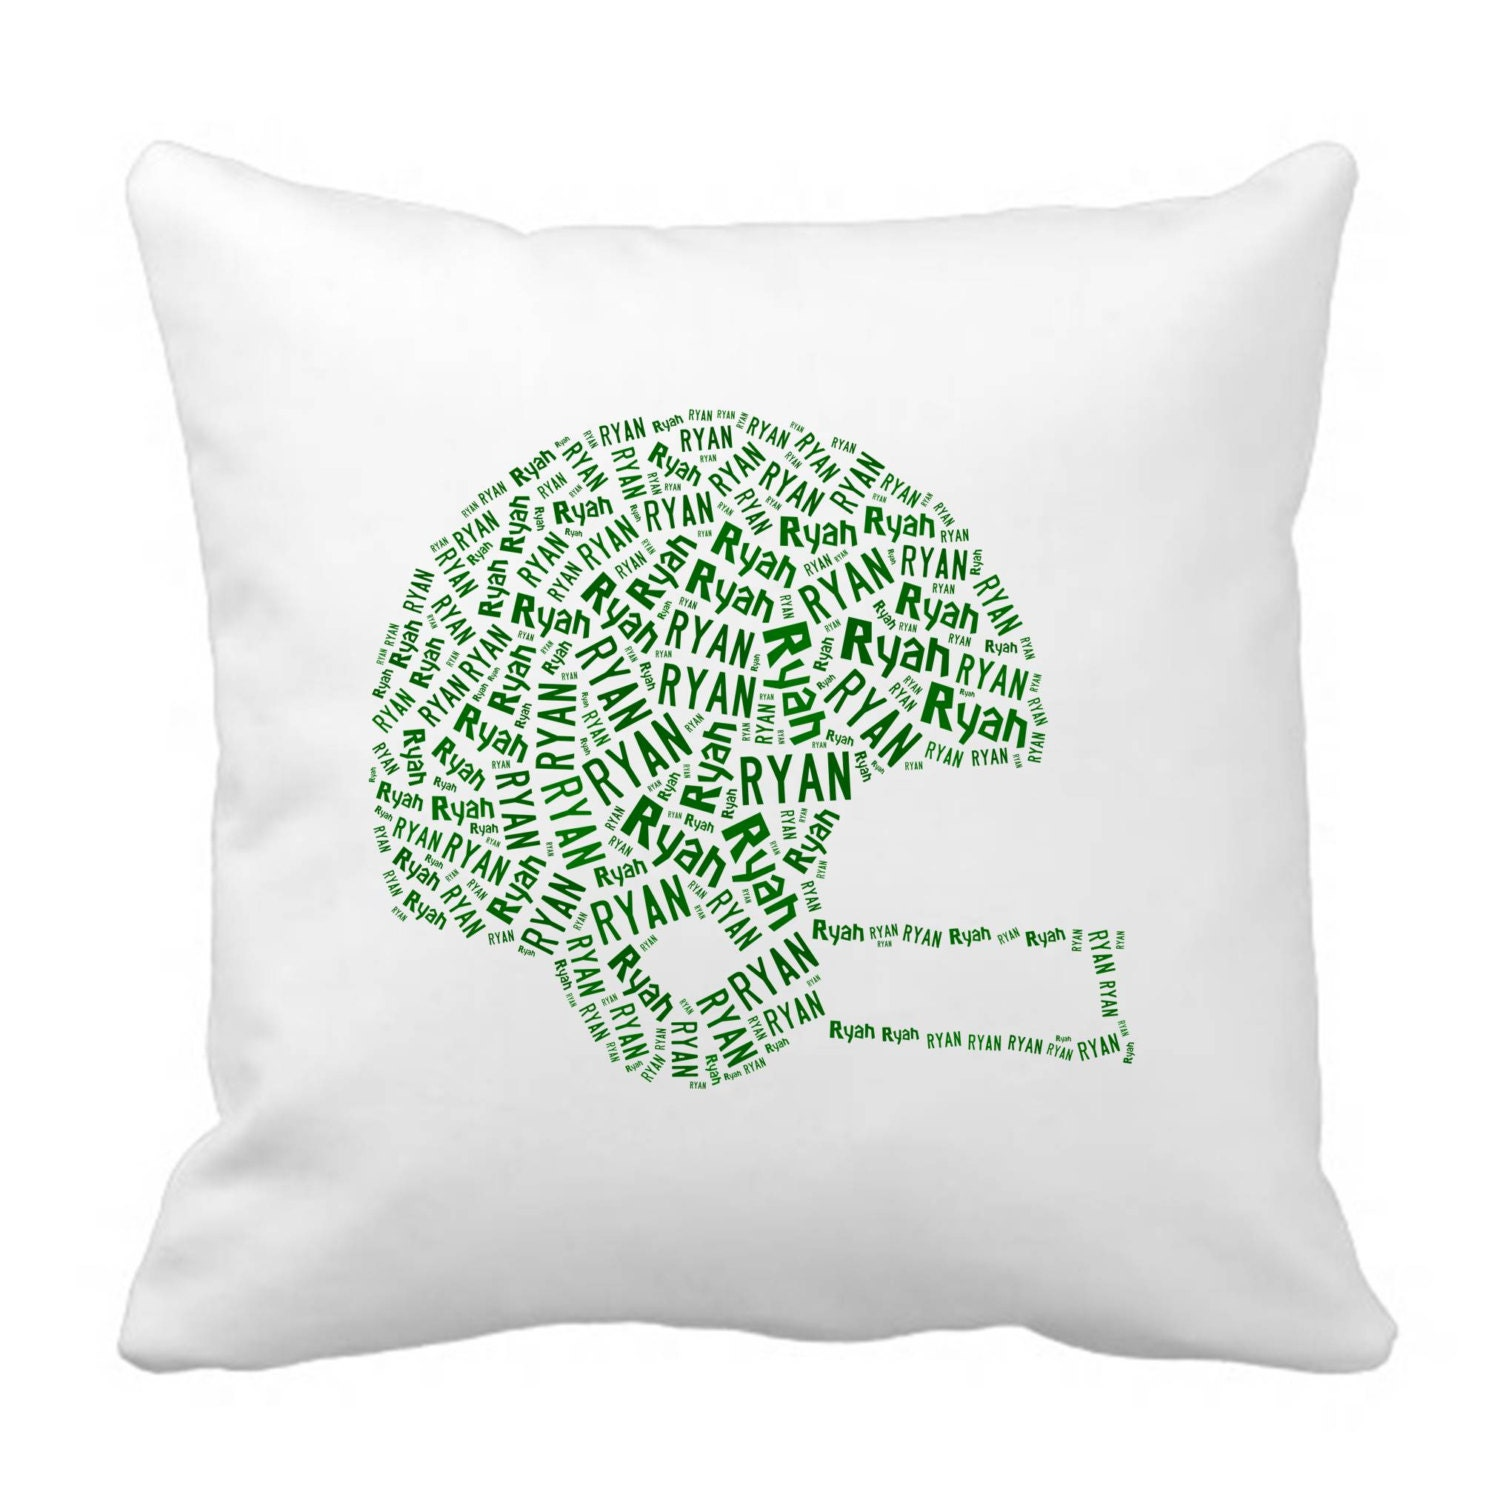 20 By 20 Decorative Pillow Covers : Personalized 20 x 20 Throw Pillow Cover for the Baylor